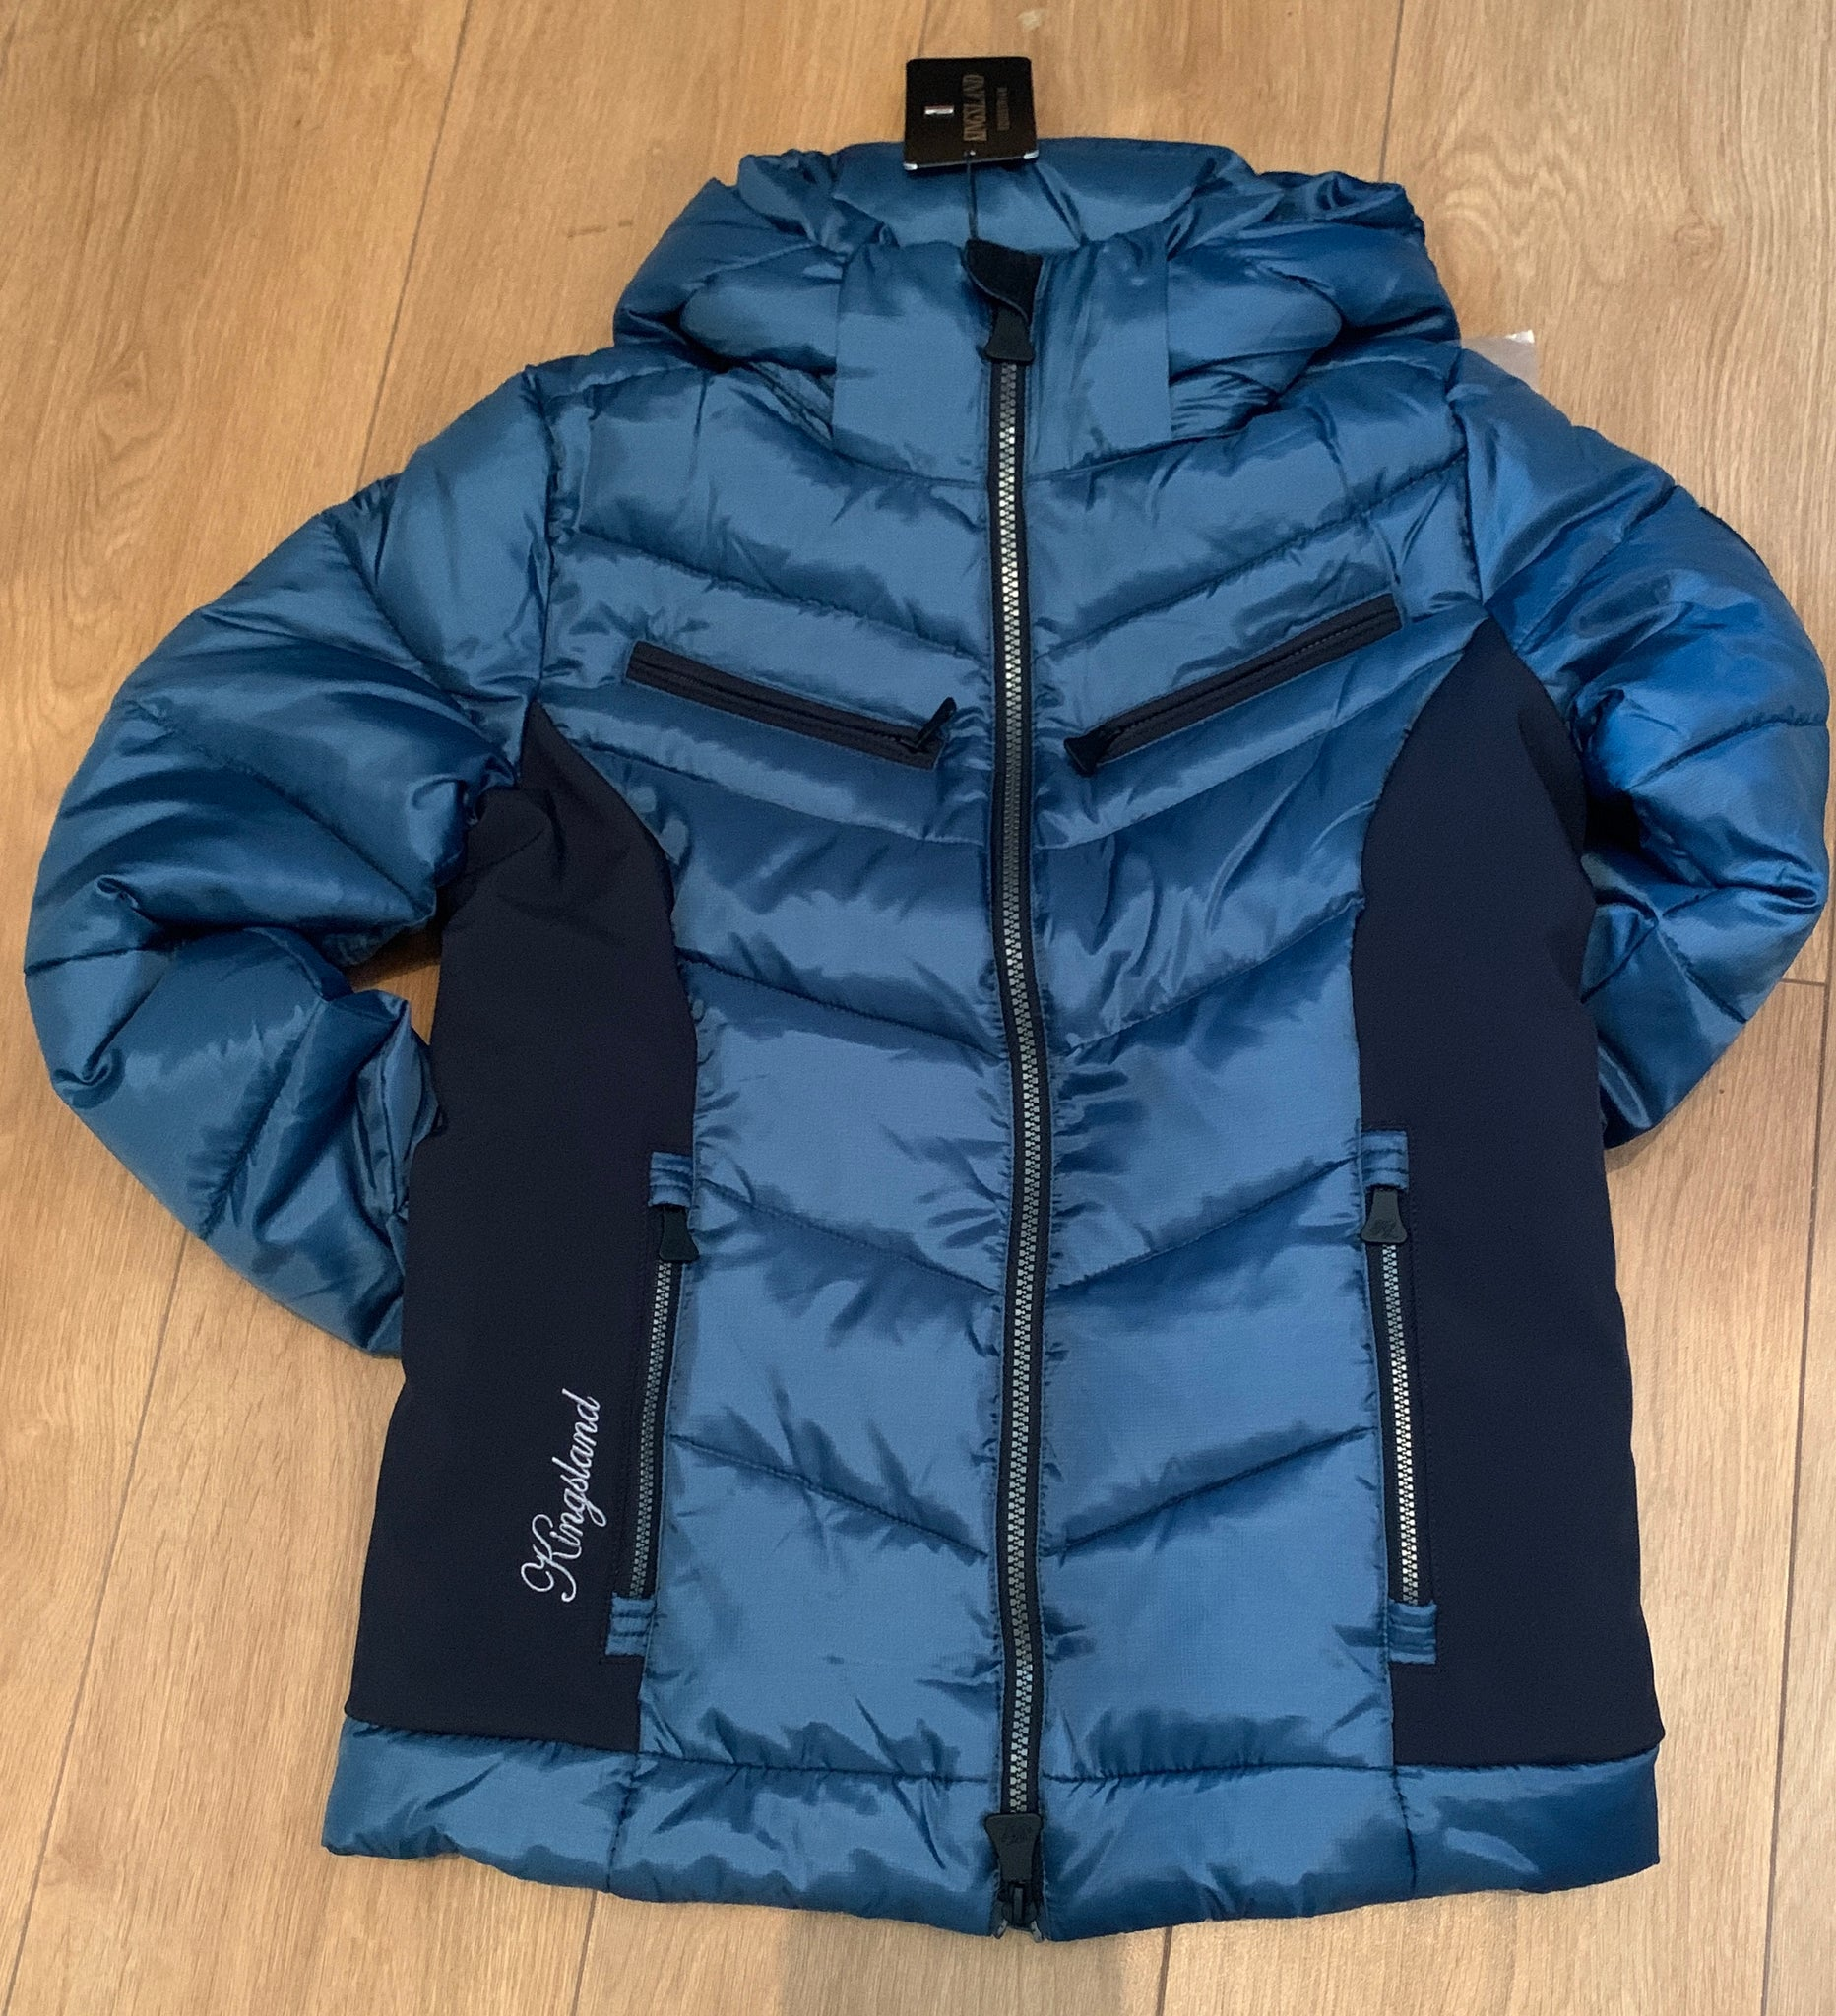 Kingsland Nakina Jacket